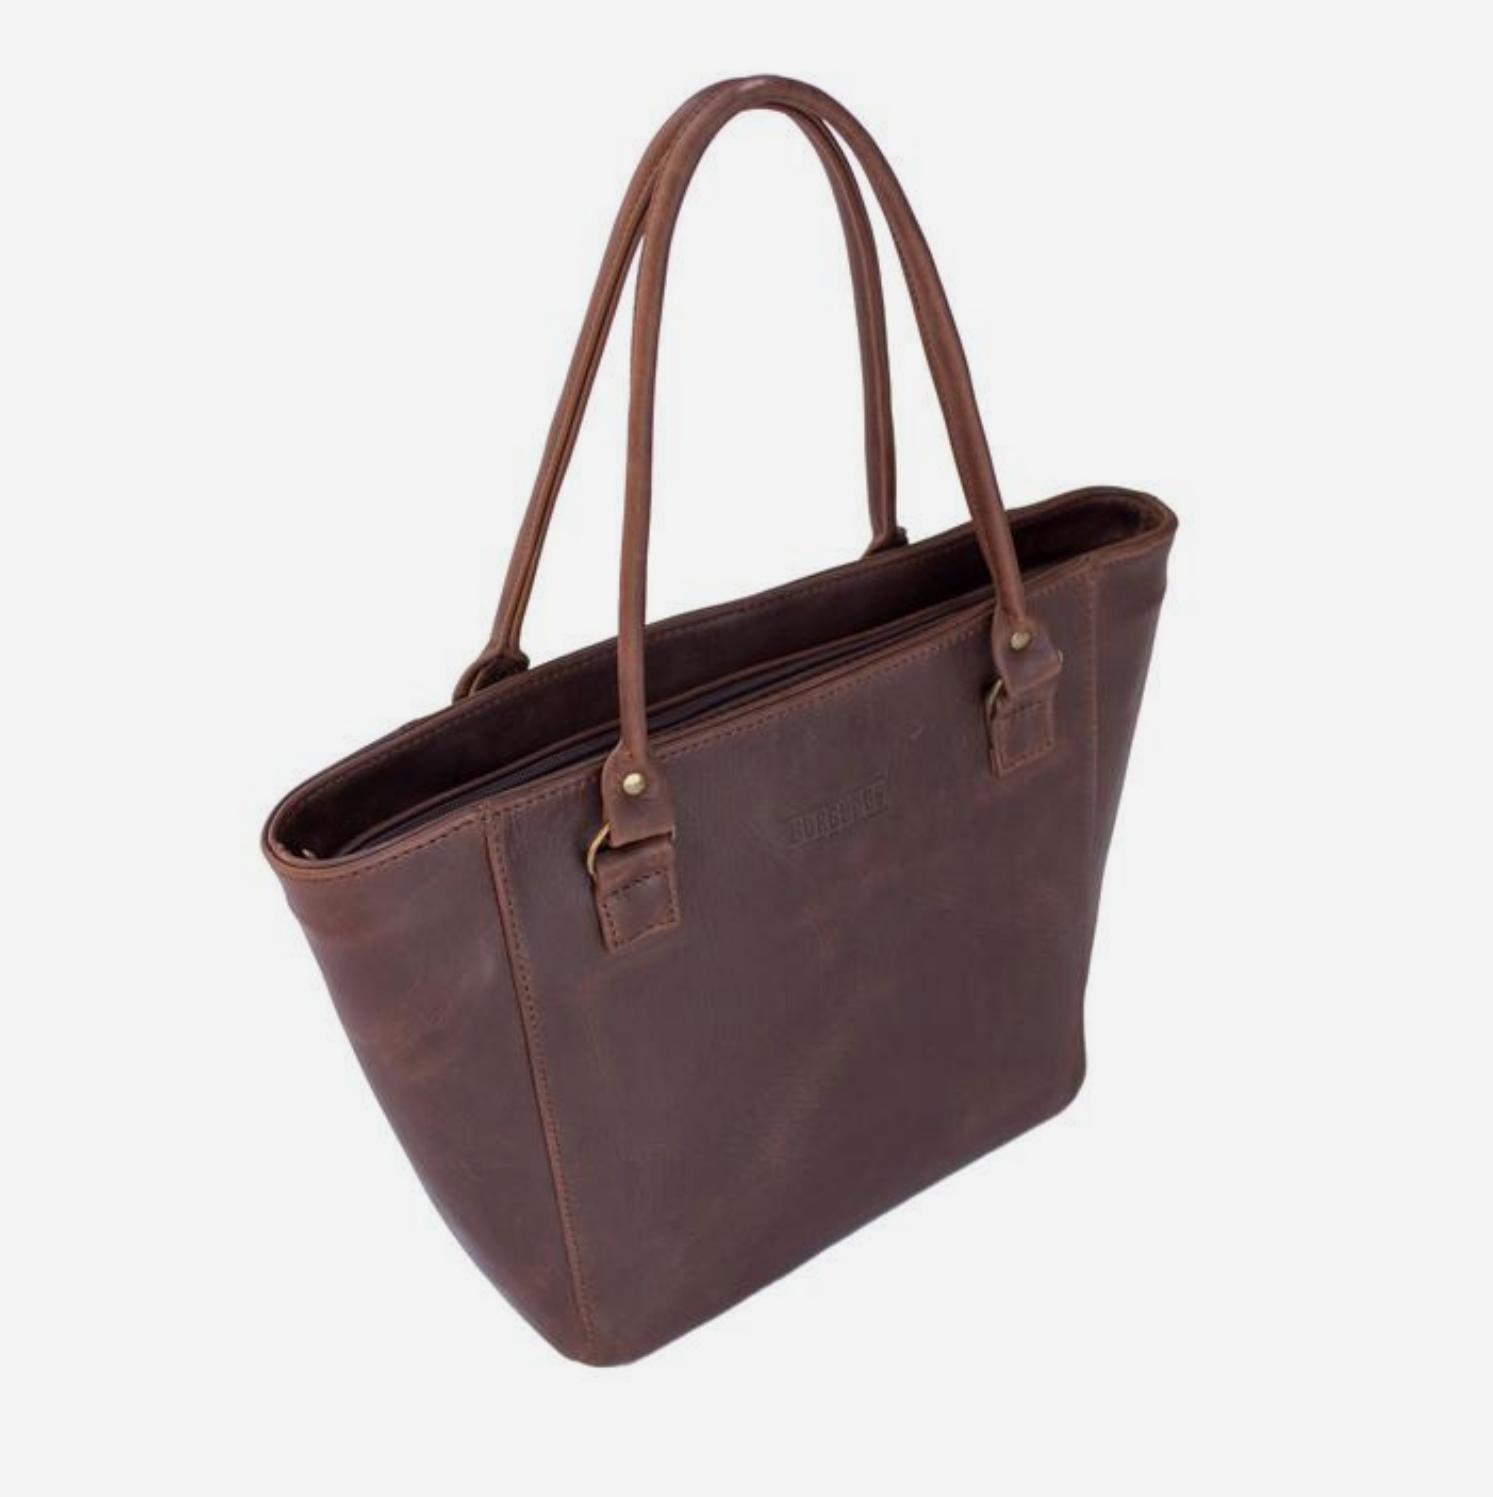 The Handbag - Brown